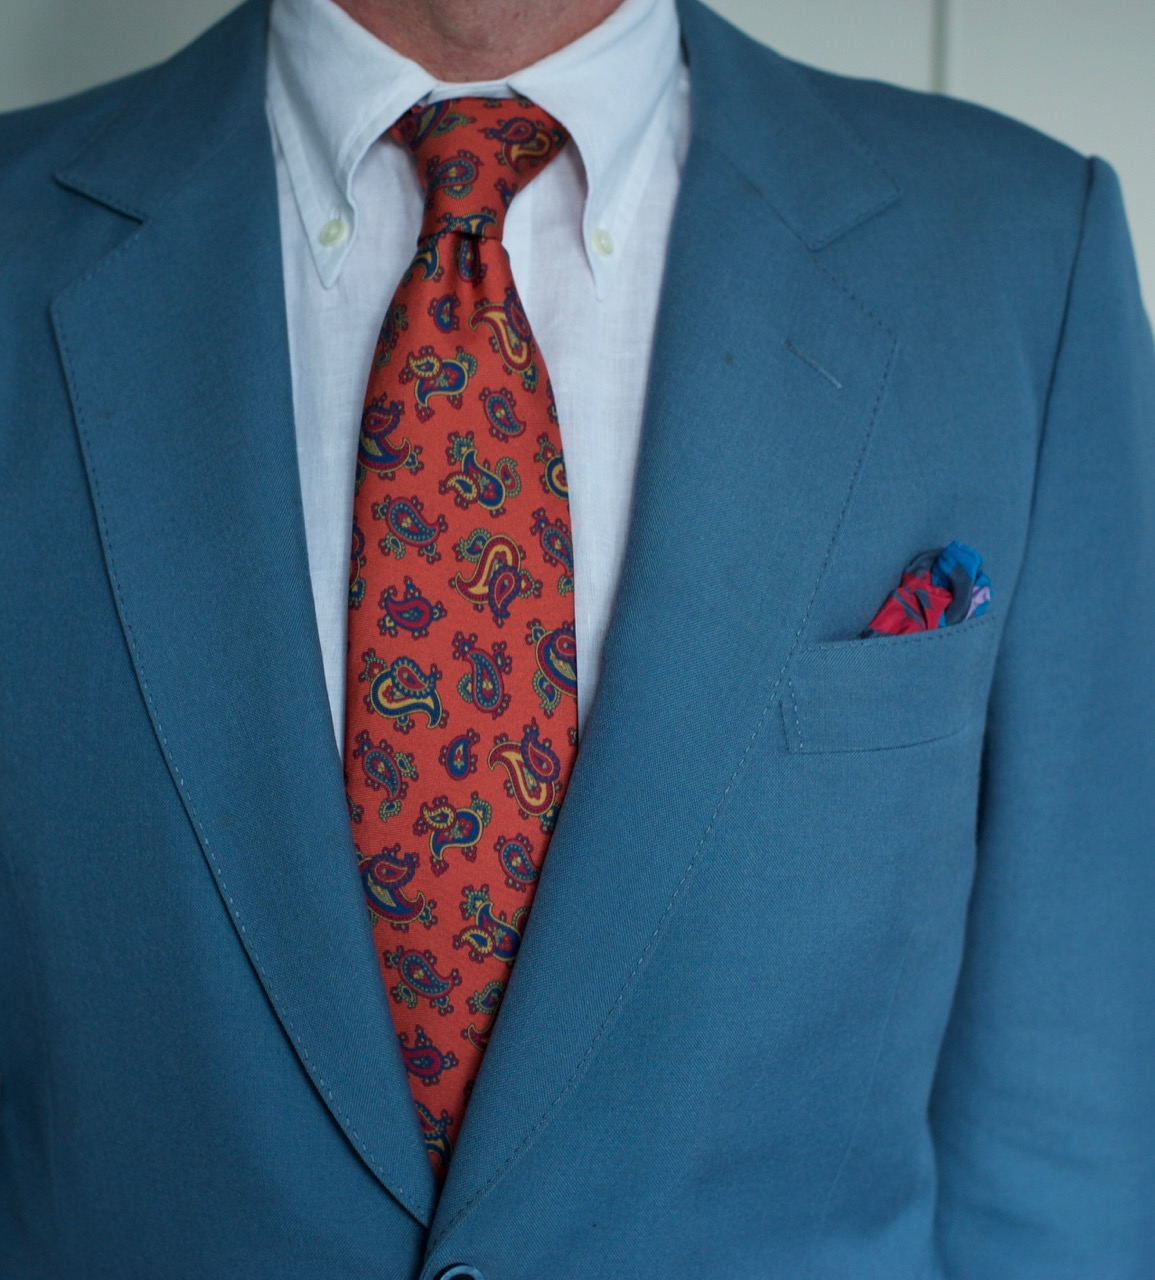 Coxsackie's photos in TEN TIES, FIVE JACKETS (10/5 THREAD): SPRING-SUMMER EDITION